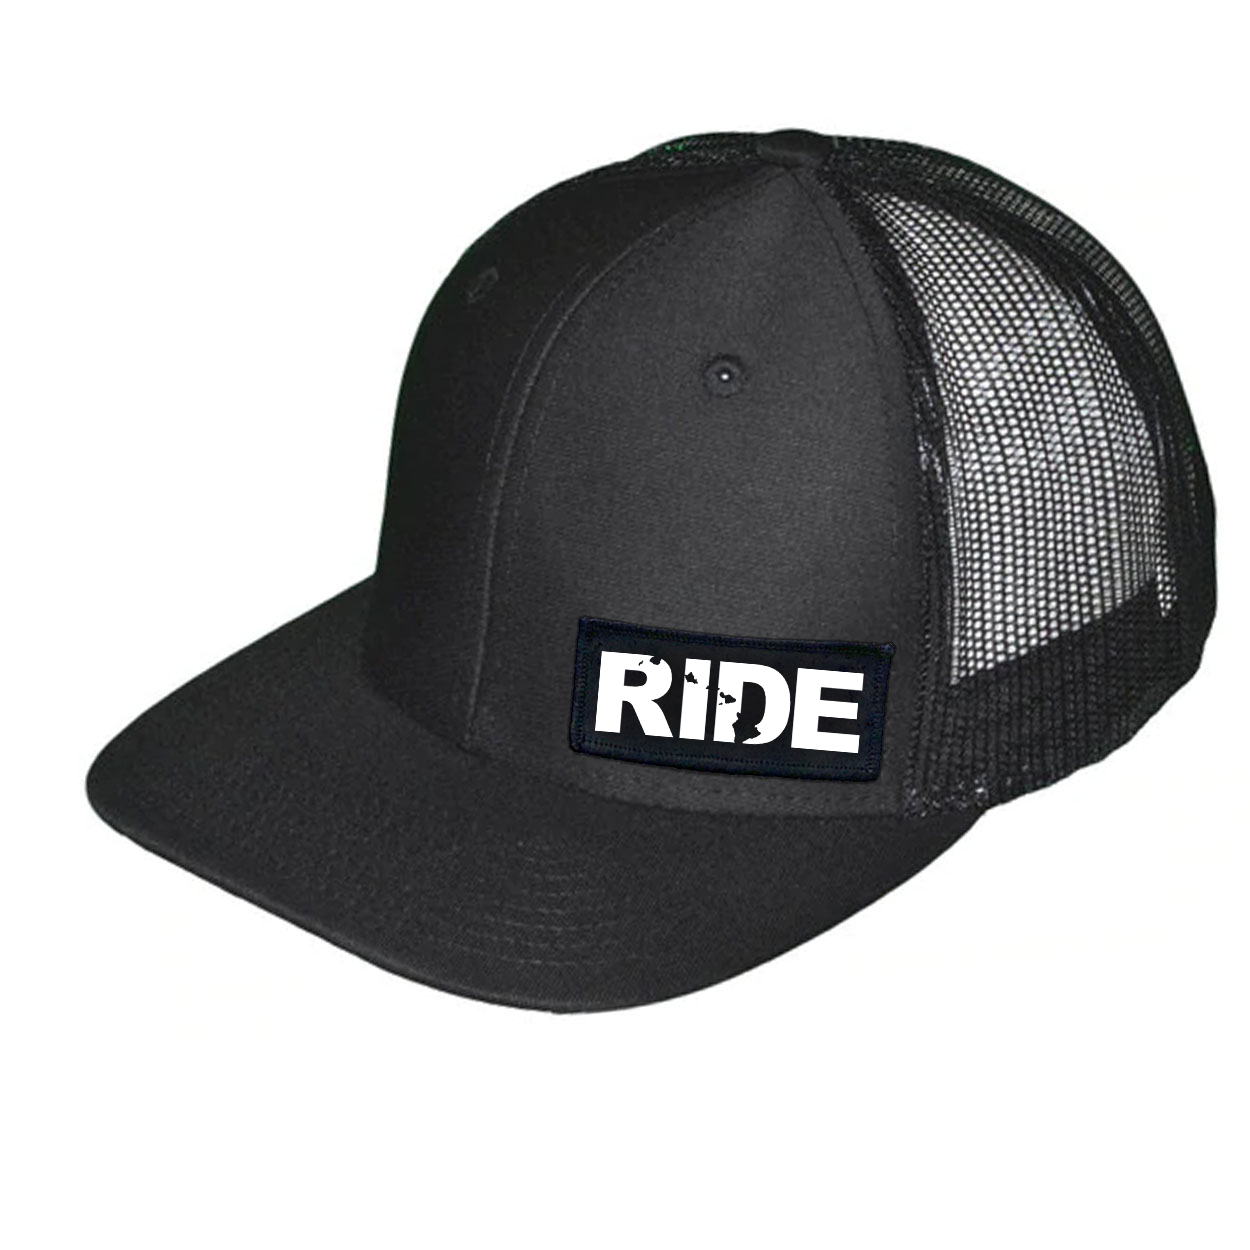 Ride Hawaii Night Out Woven Patch Snapback Trucker Hat Black (White Logo)